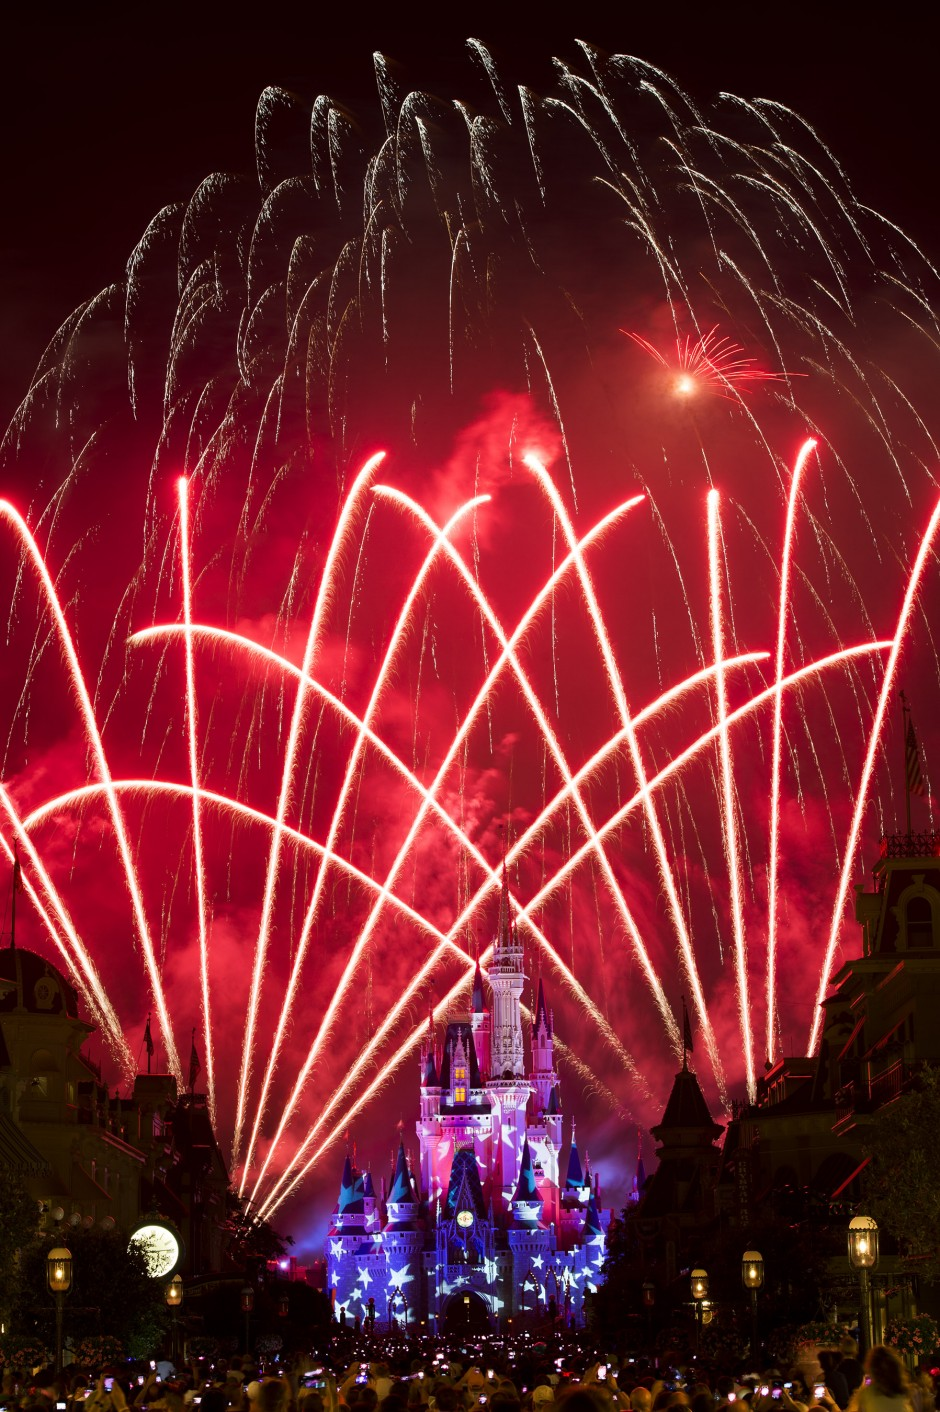 What Can You Do at the Walt Disney World Resort for 4th of July?